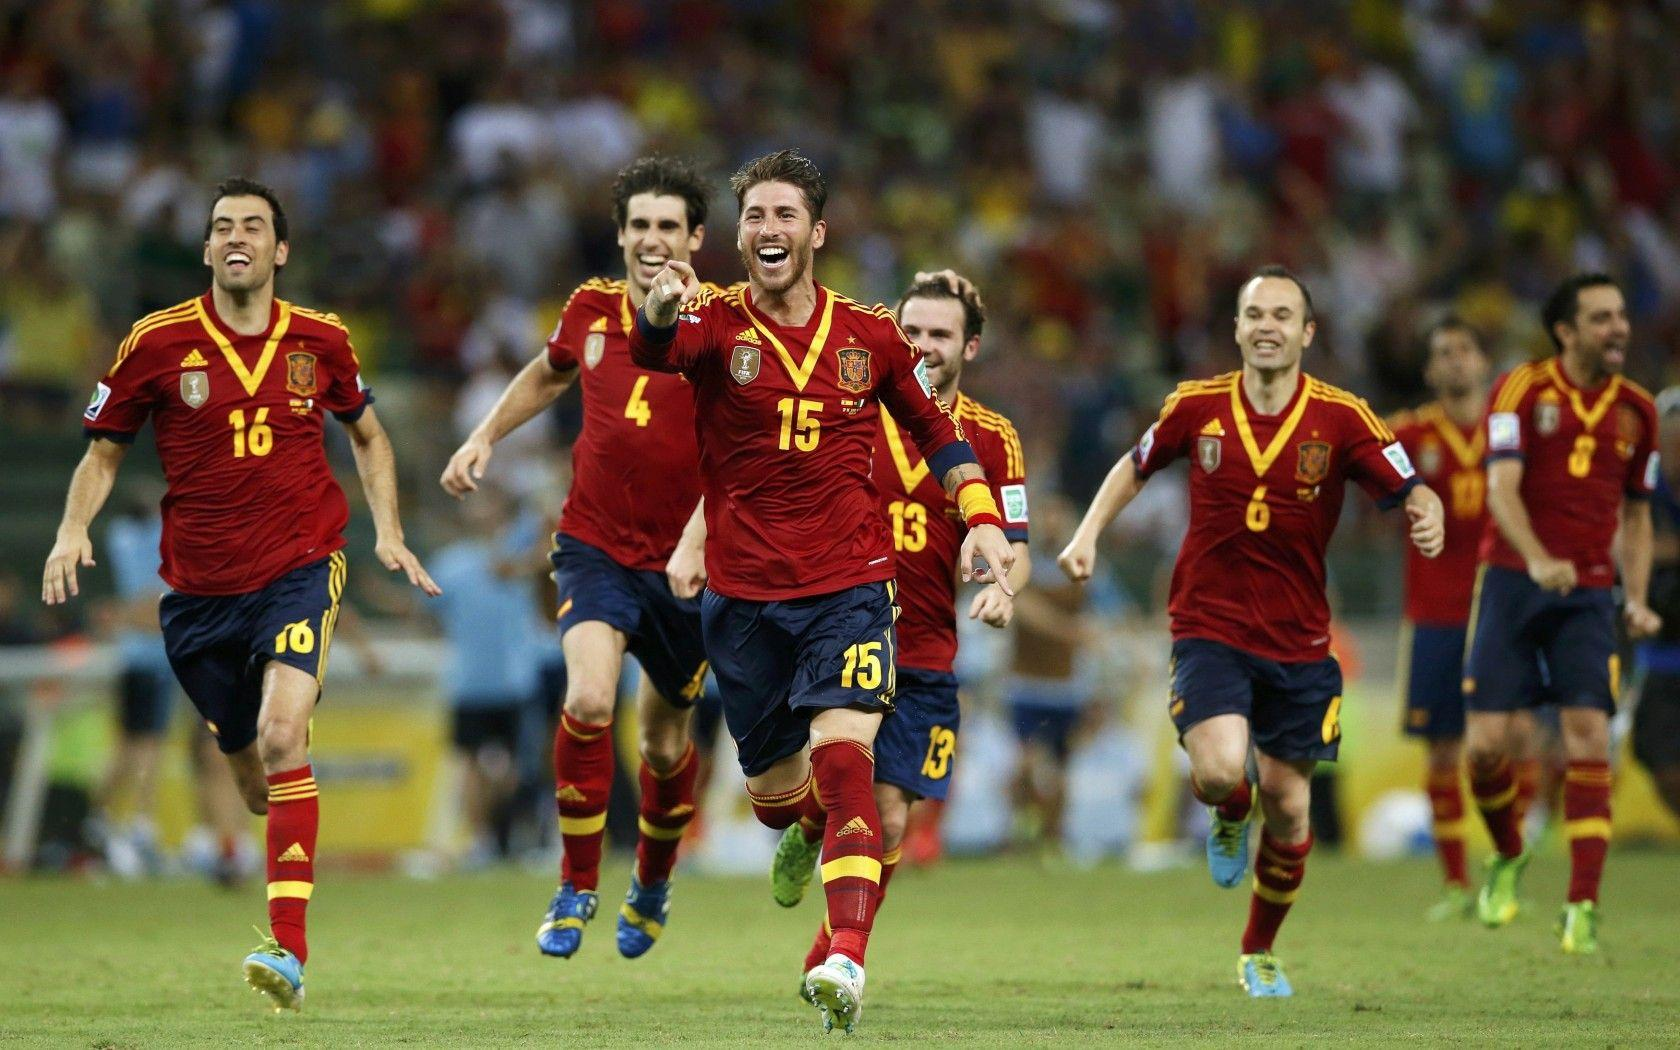 af889bc2917 Spain National Football Team Wallpapers - Free download latest .